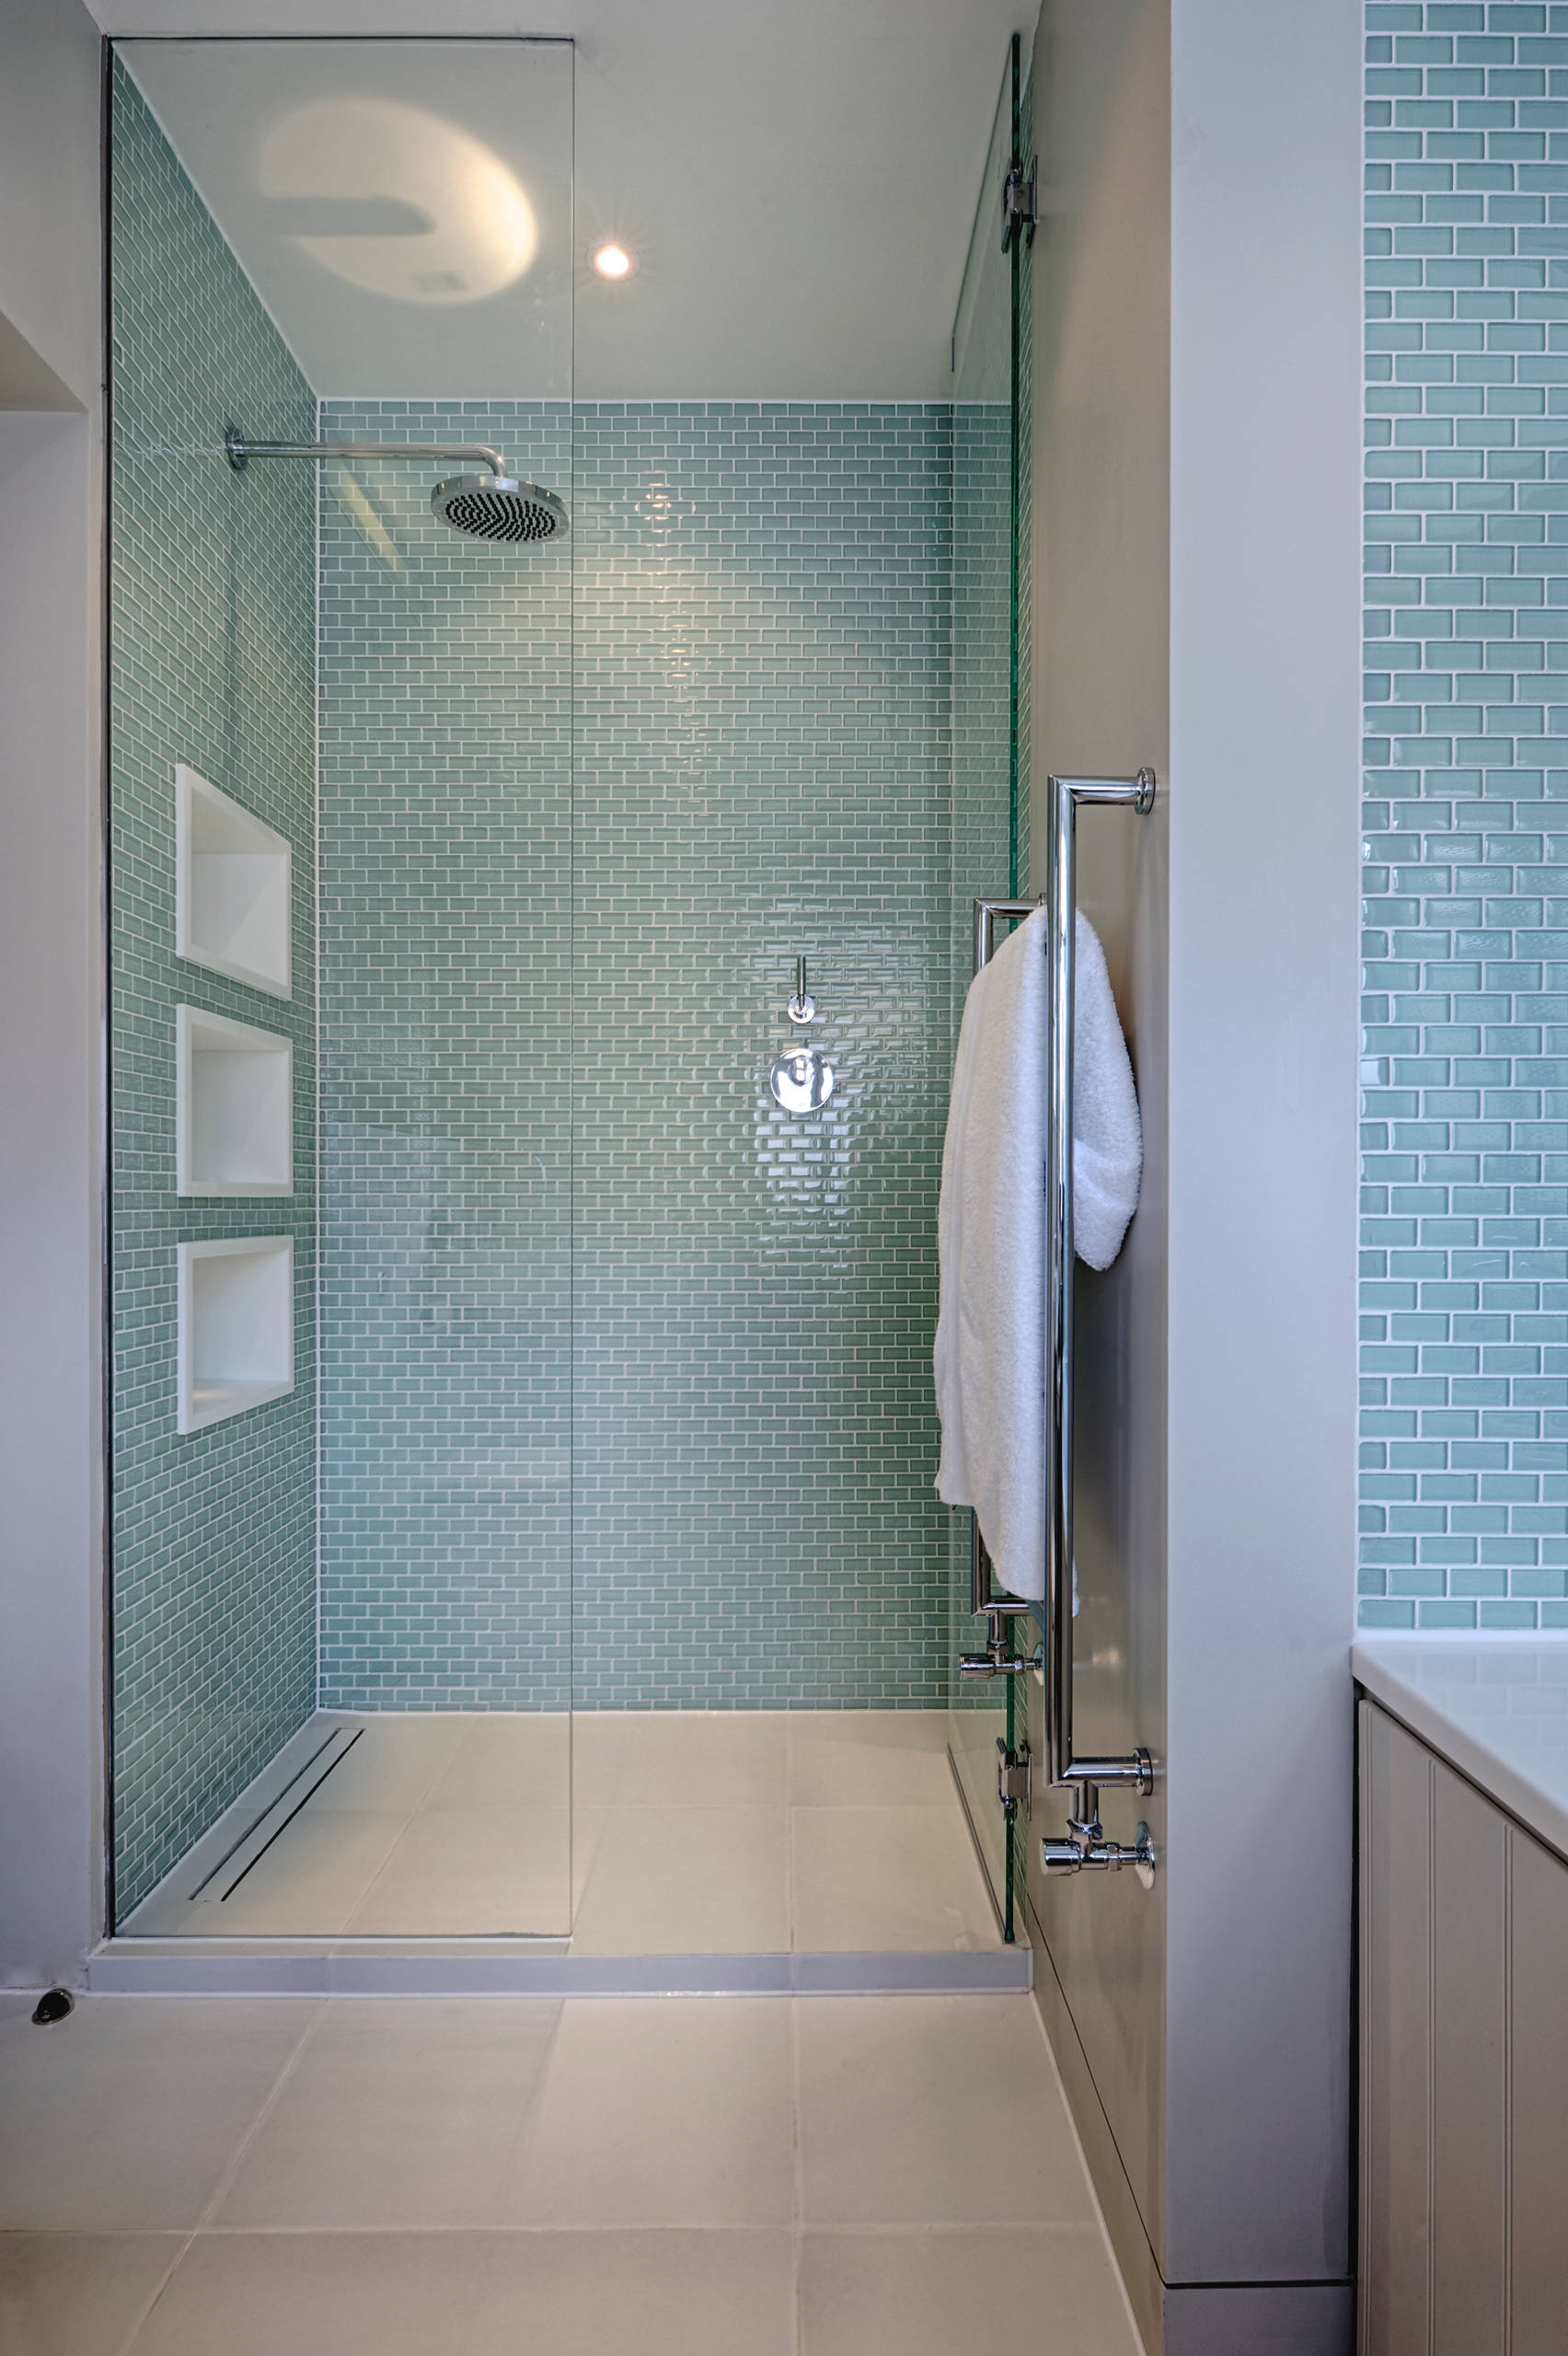 75 Beautiful Glass Tile Bathroom Pictures Ideas January 2021 Houzz